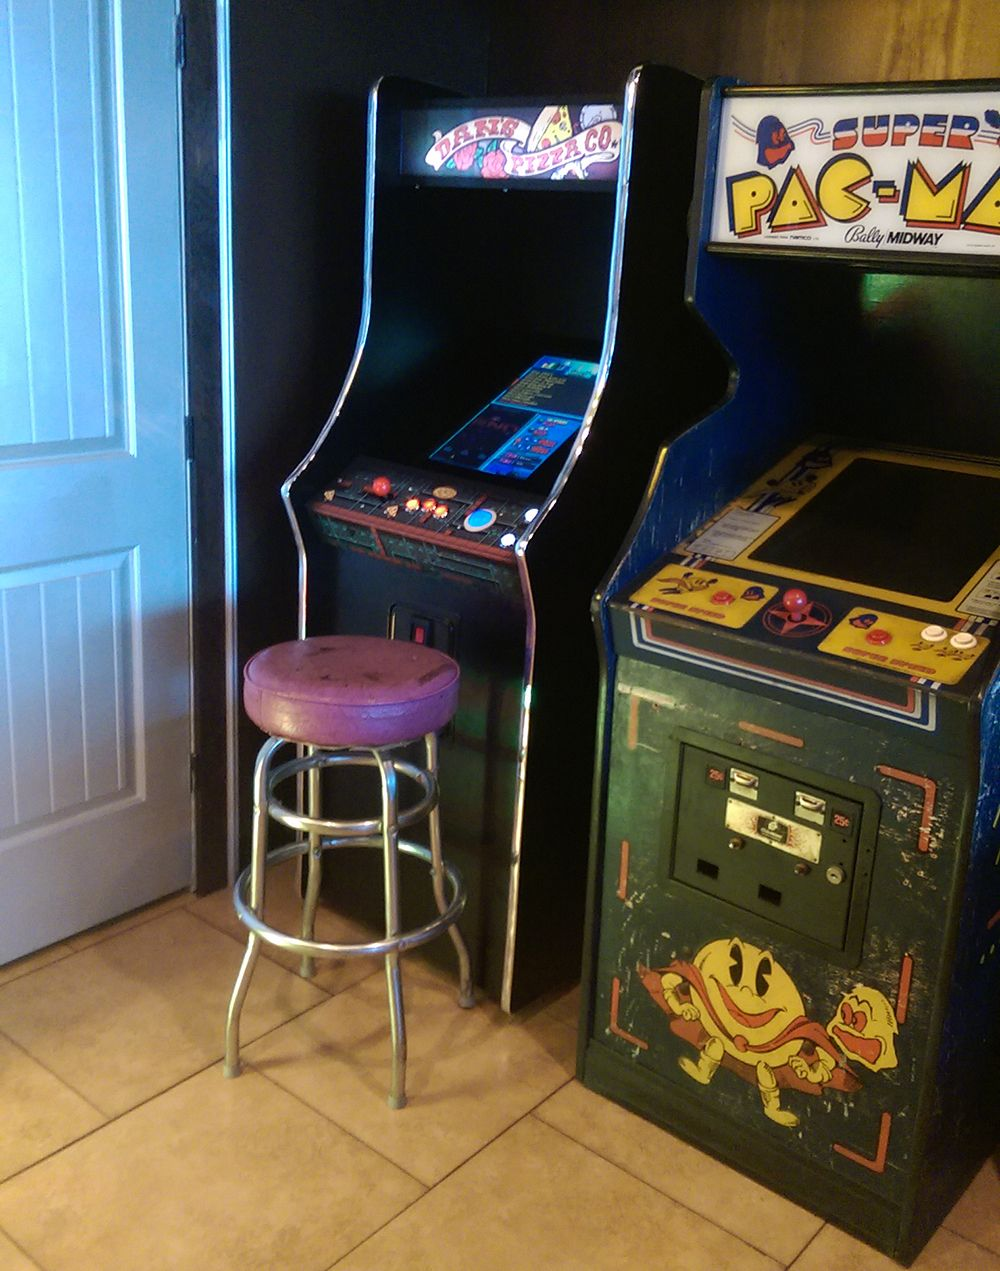 machine famous original to multicade used pi nintendo video sale a almost ace styled cabinet vs game arcade exactly multi playchoice the look new for like custom system brand amusements